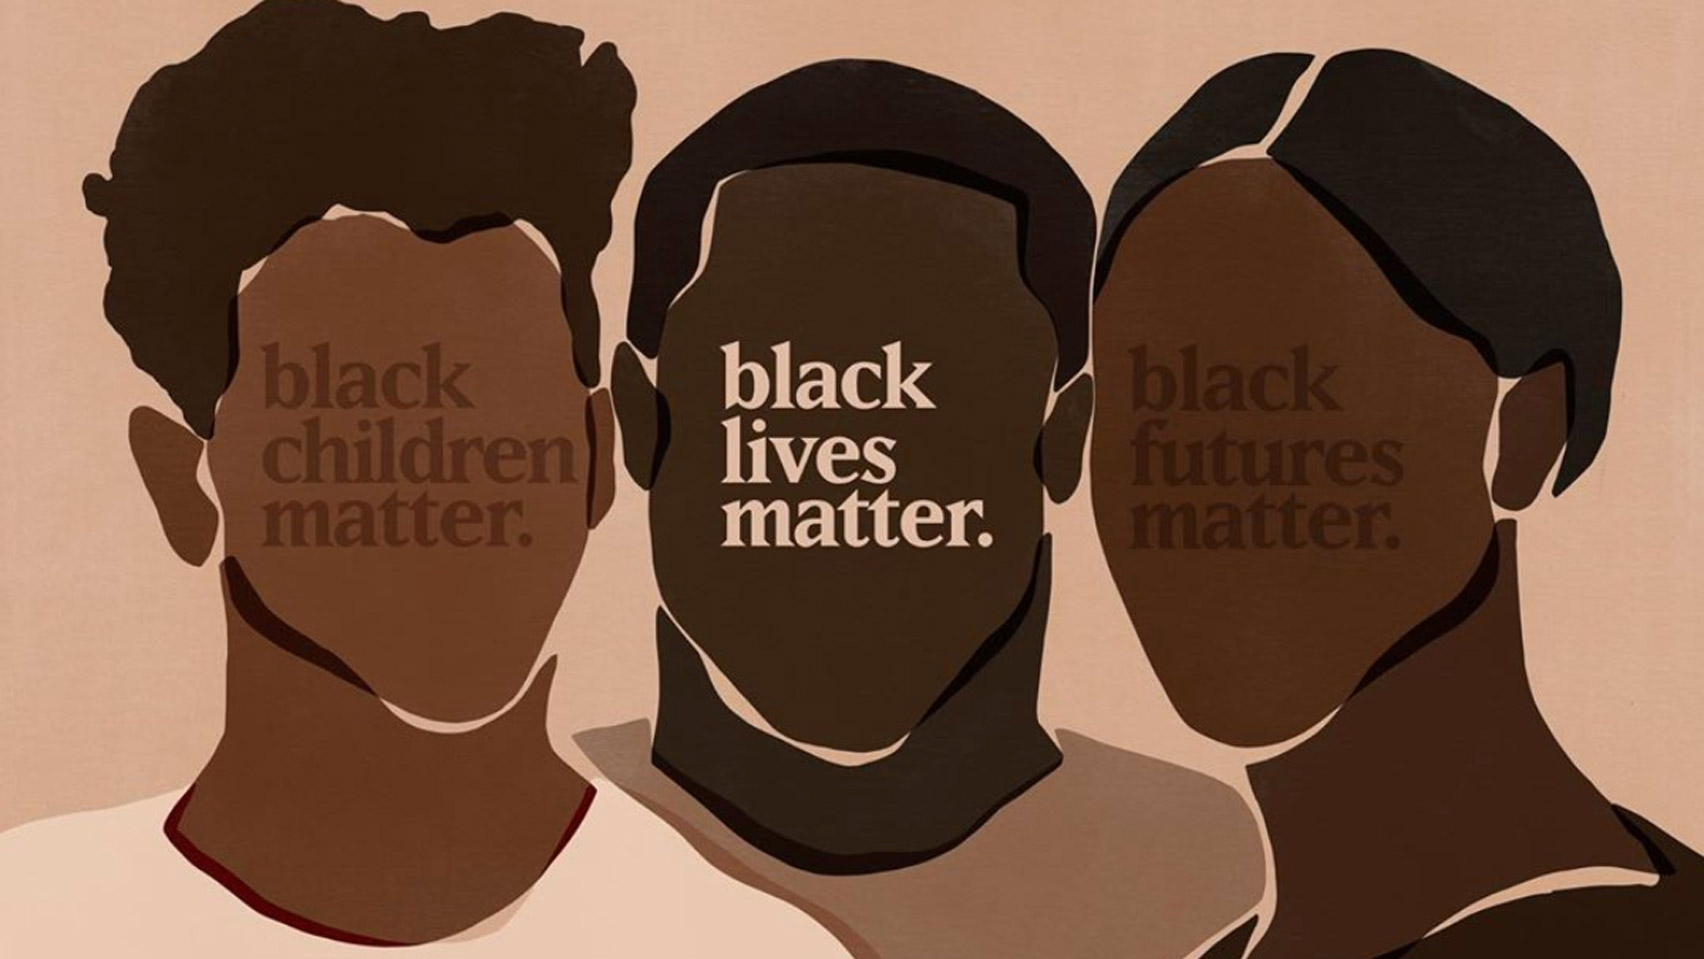 Illustration with three people and text overlay that says Black Lives Matter